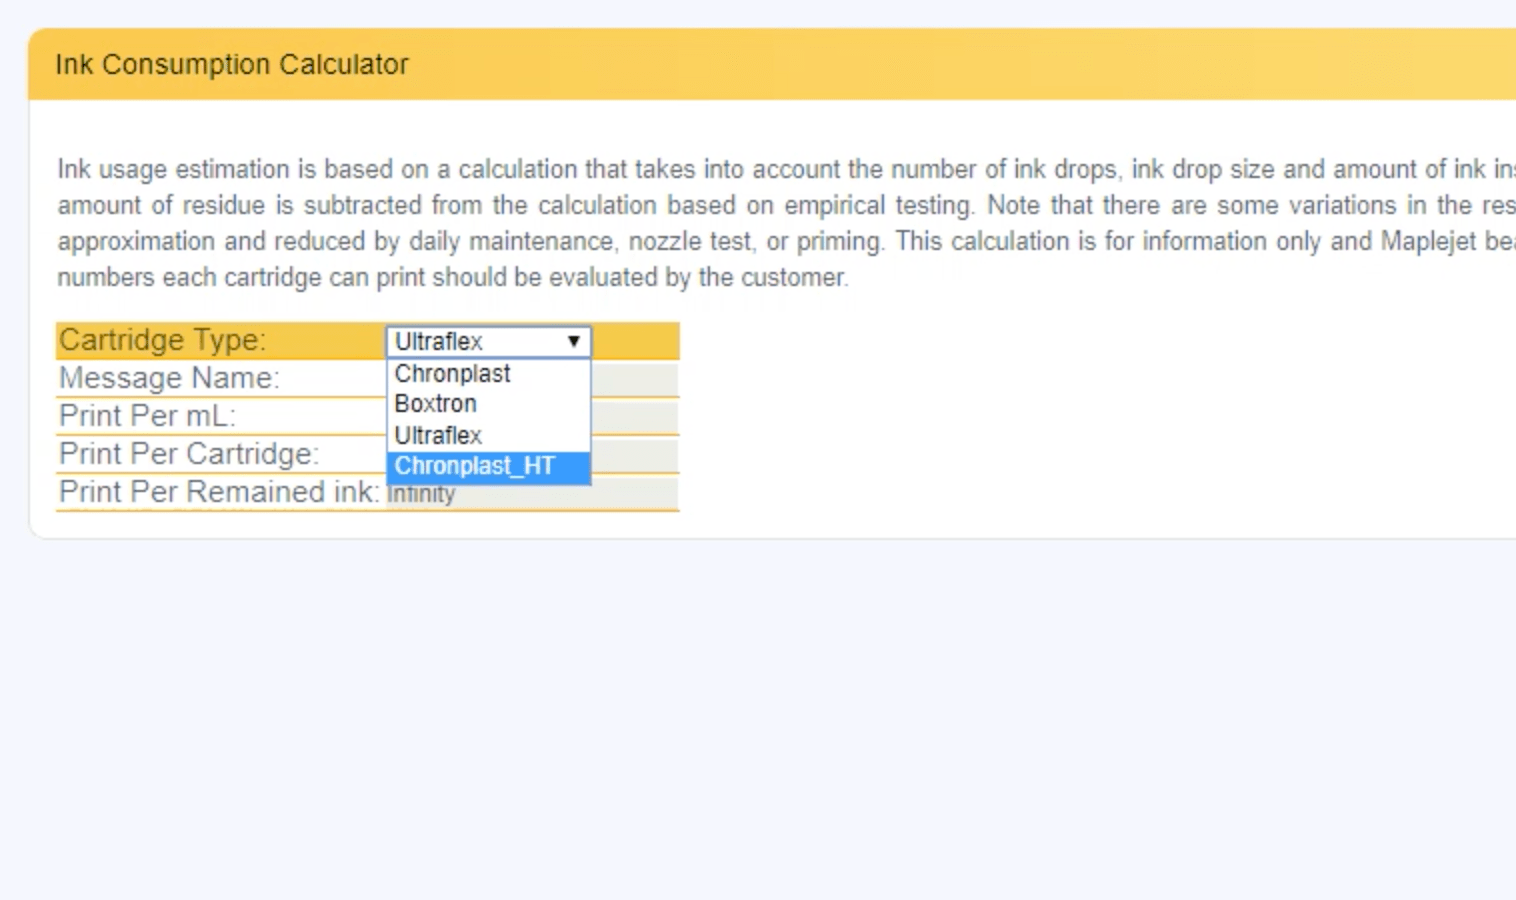 Ink Consumption Calculator a newly added feature to Hx Manager version 21